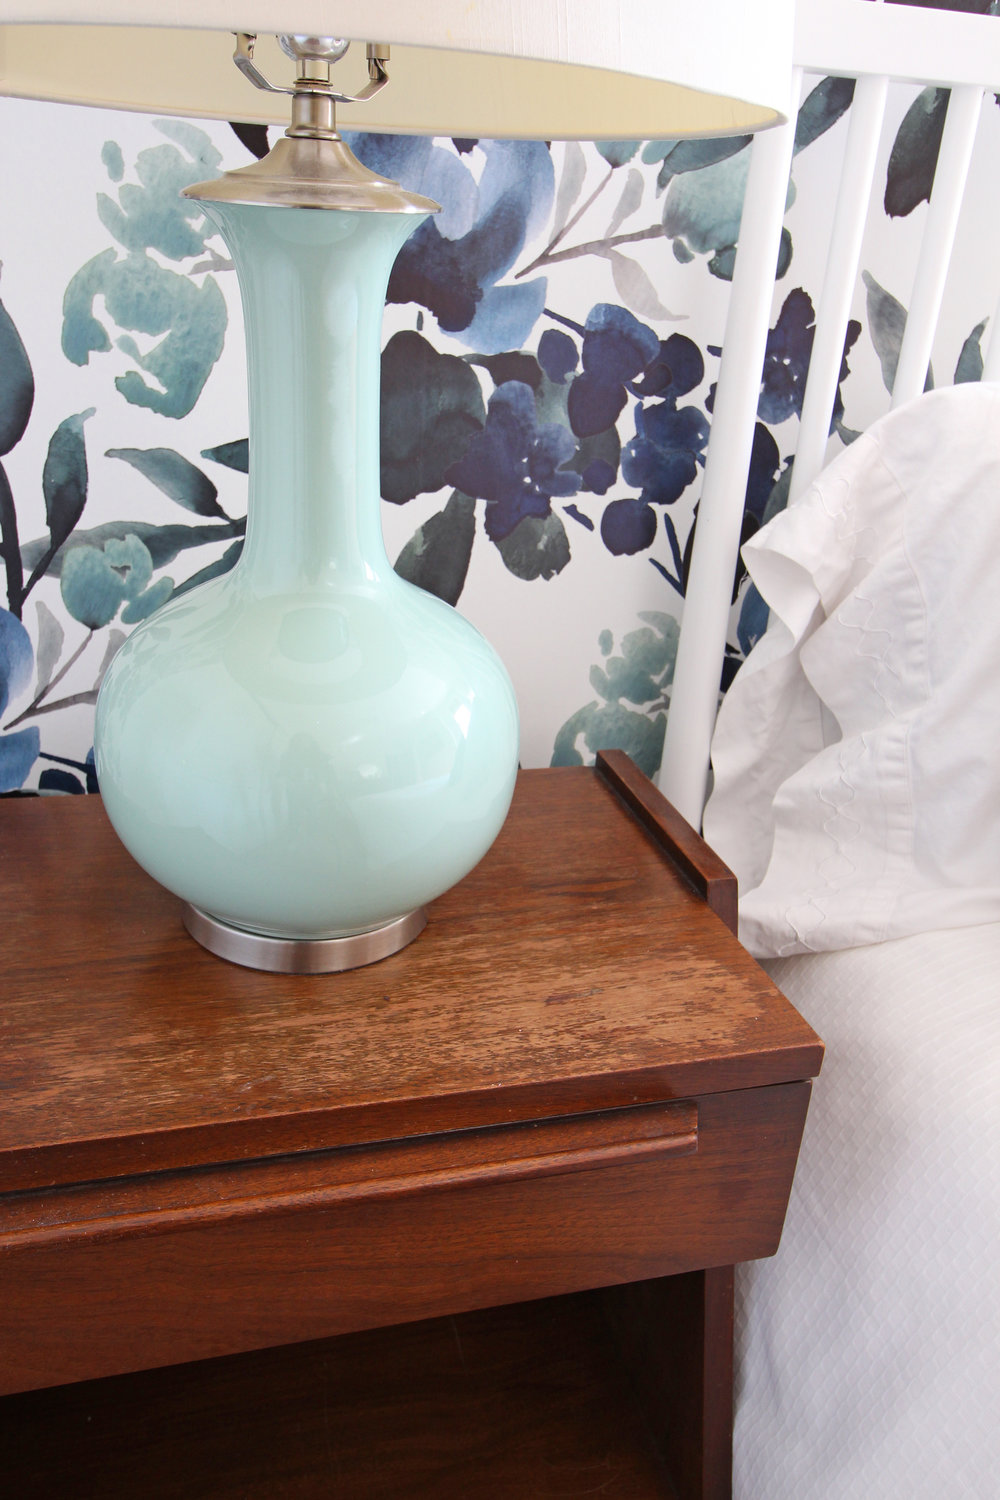 Vintage mid-century nightstand with a blue green lamp.